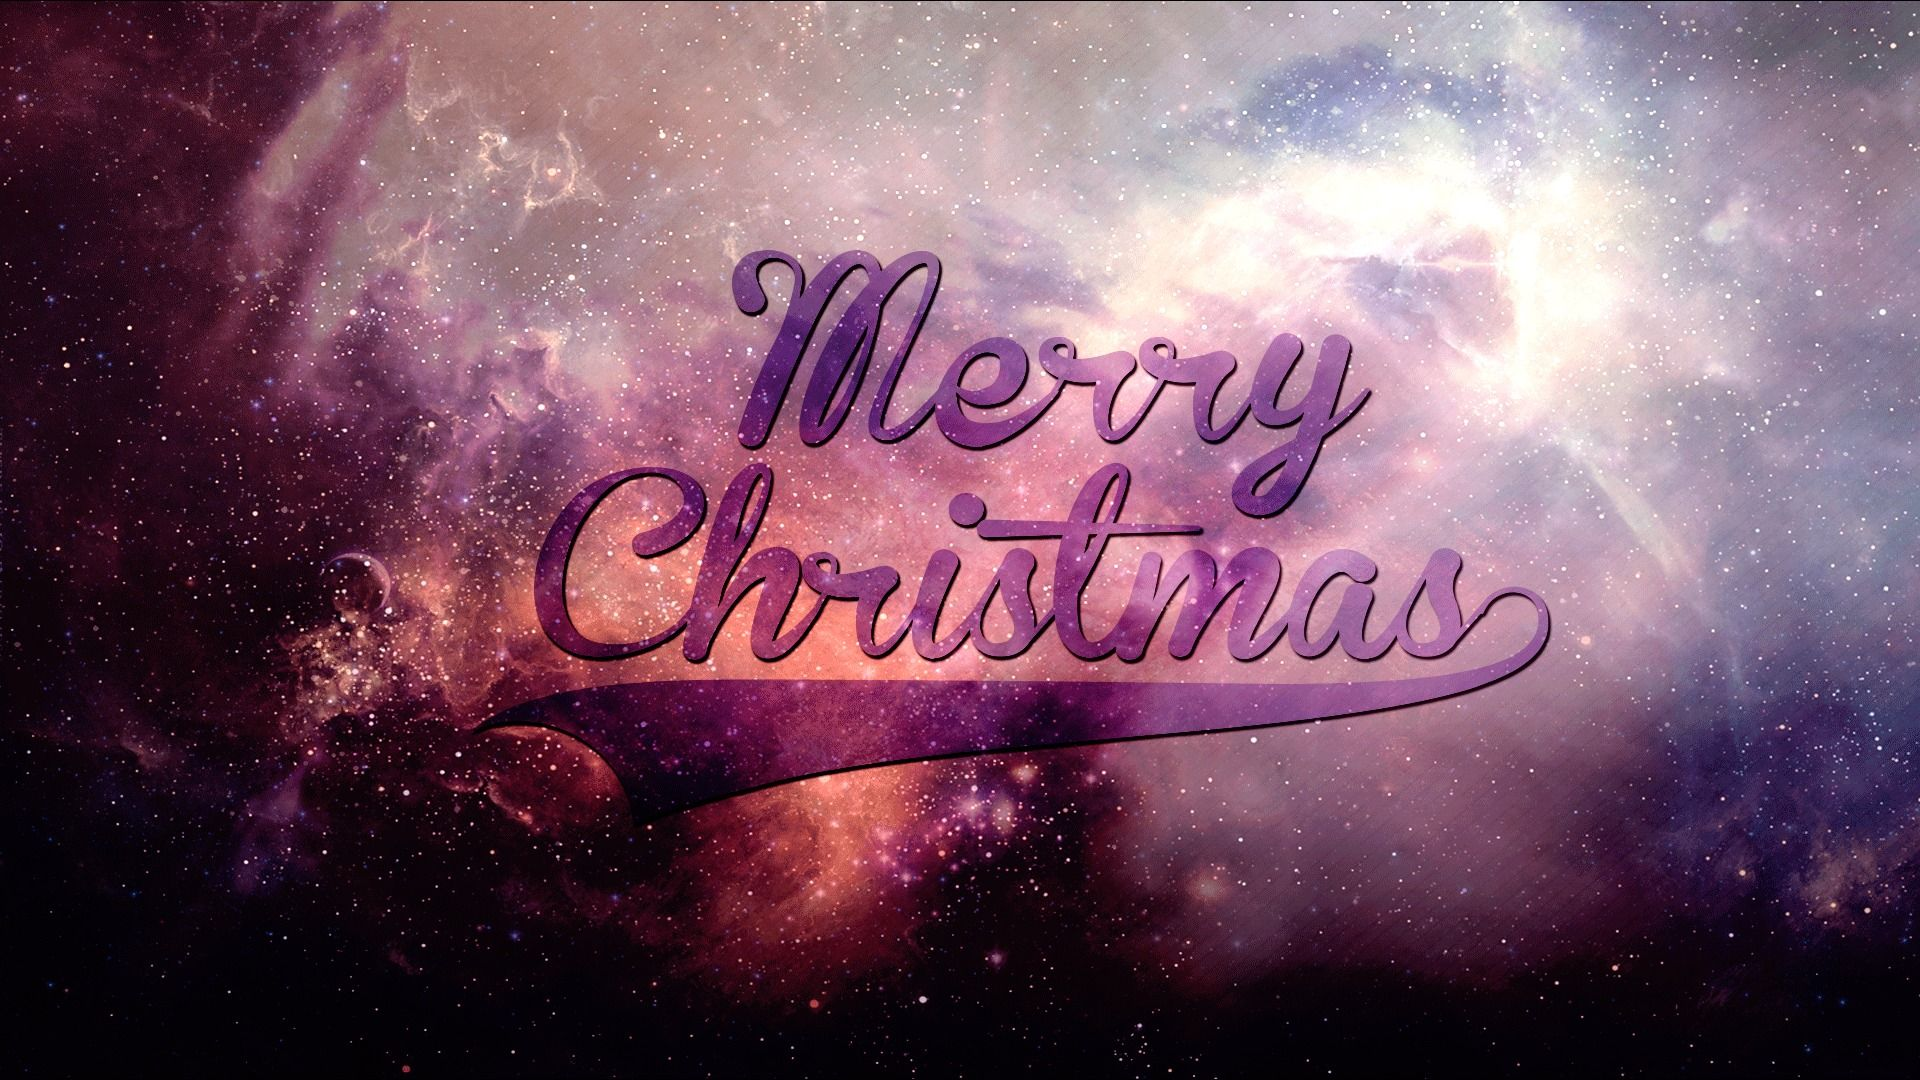 hd wallpaper picture merry christmas | merry christmas | pinterest